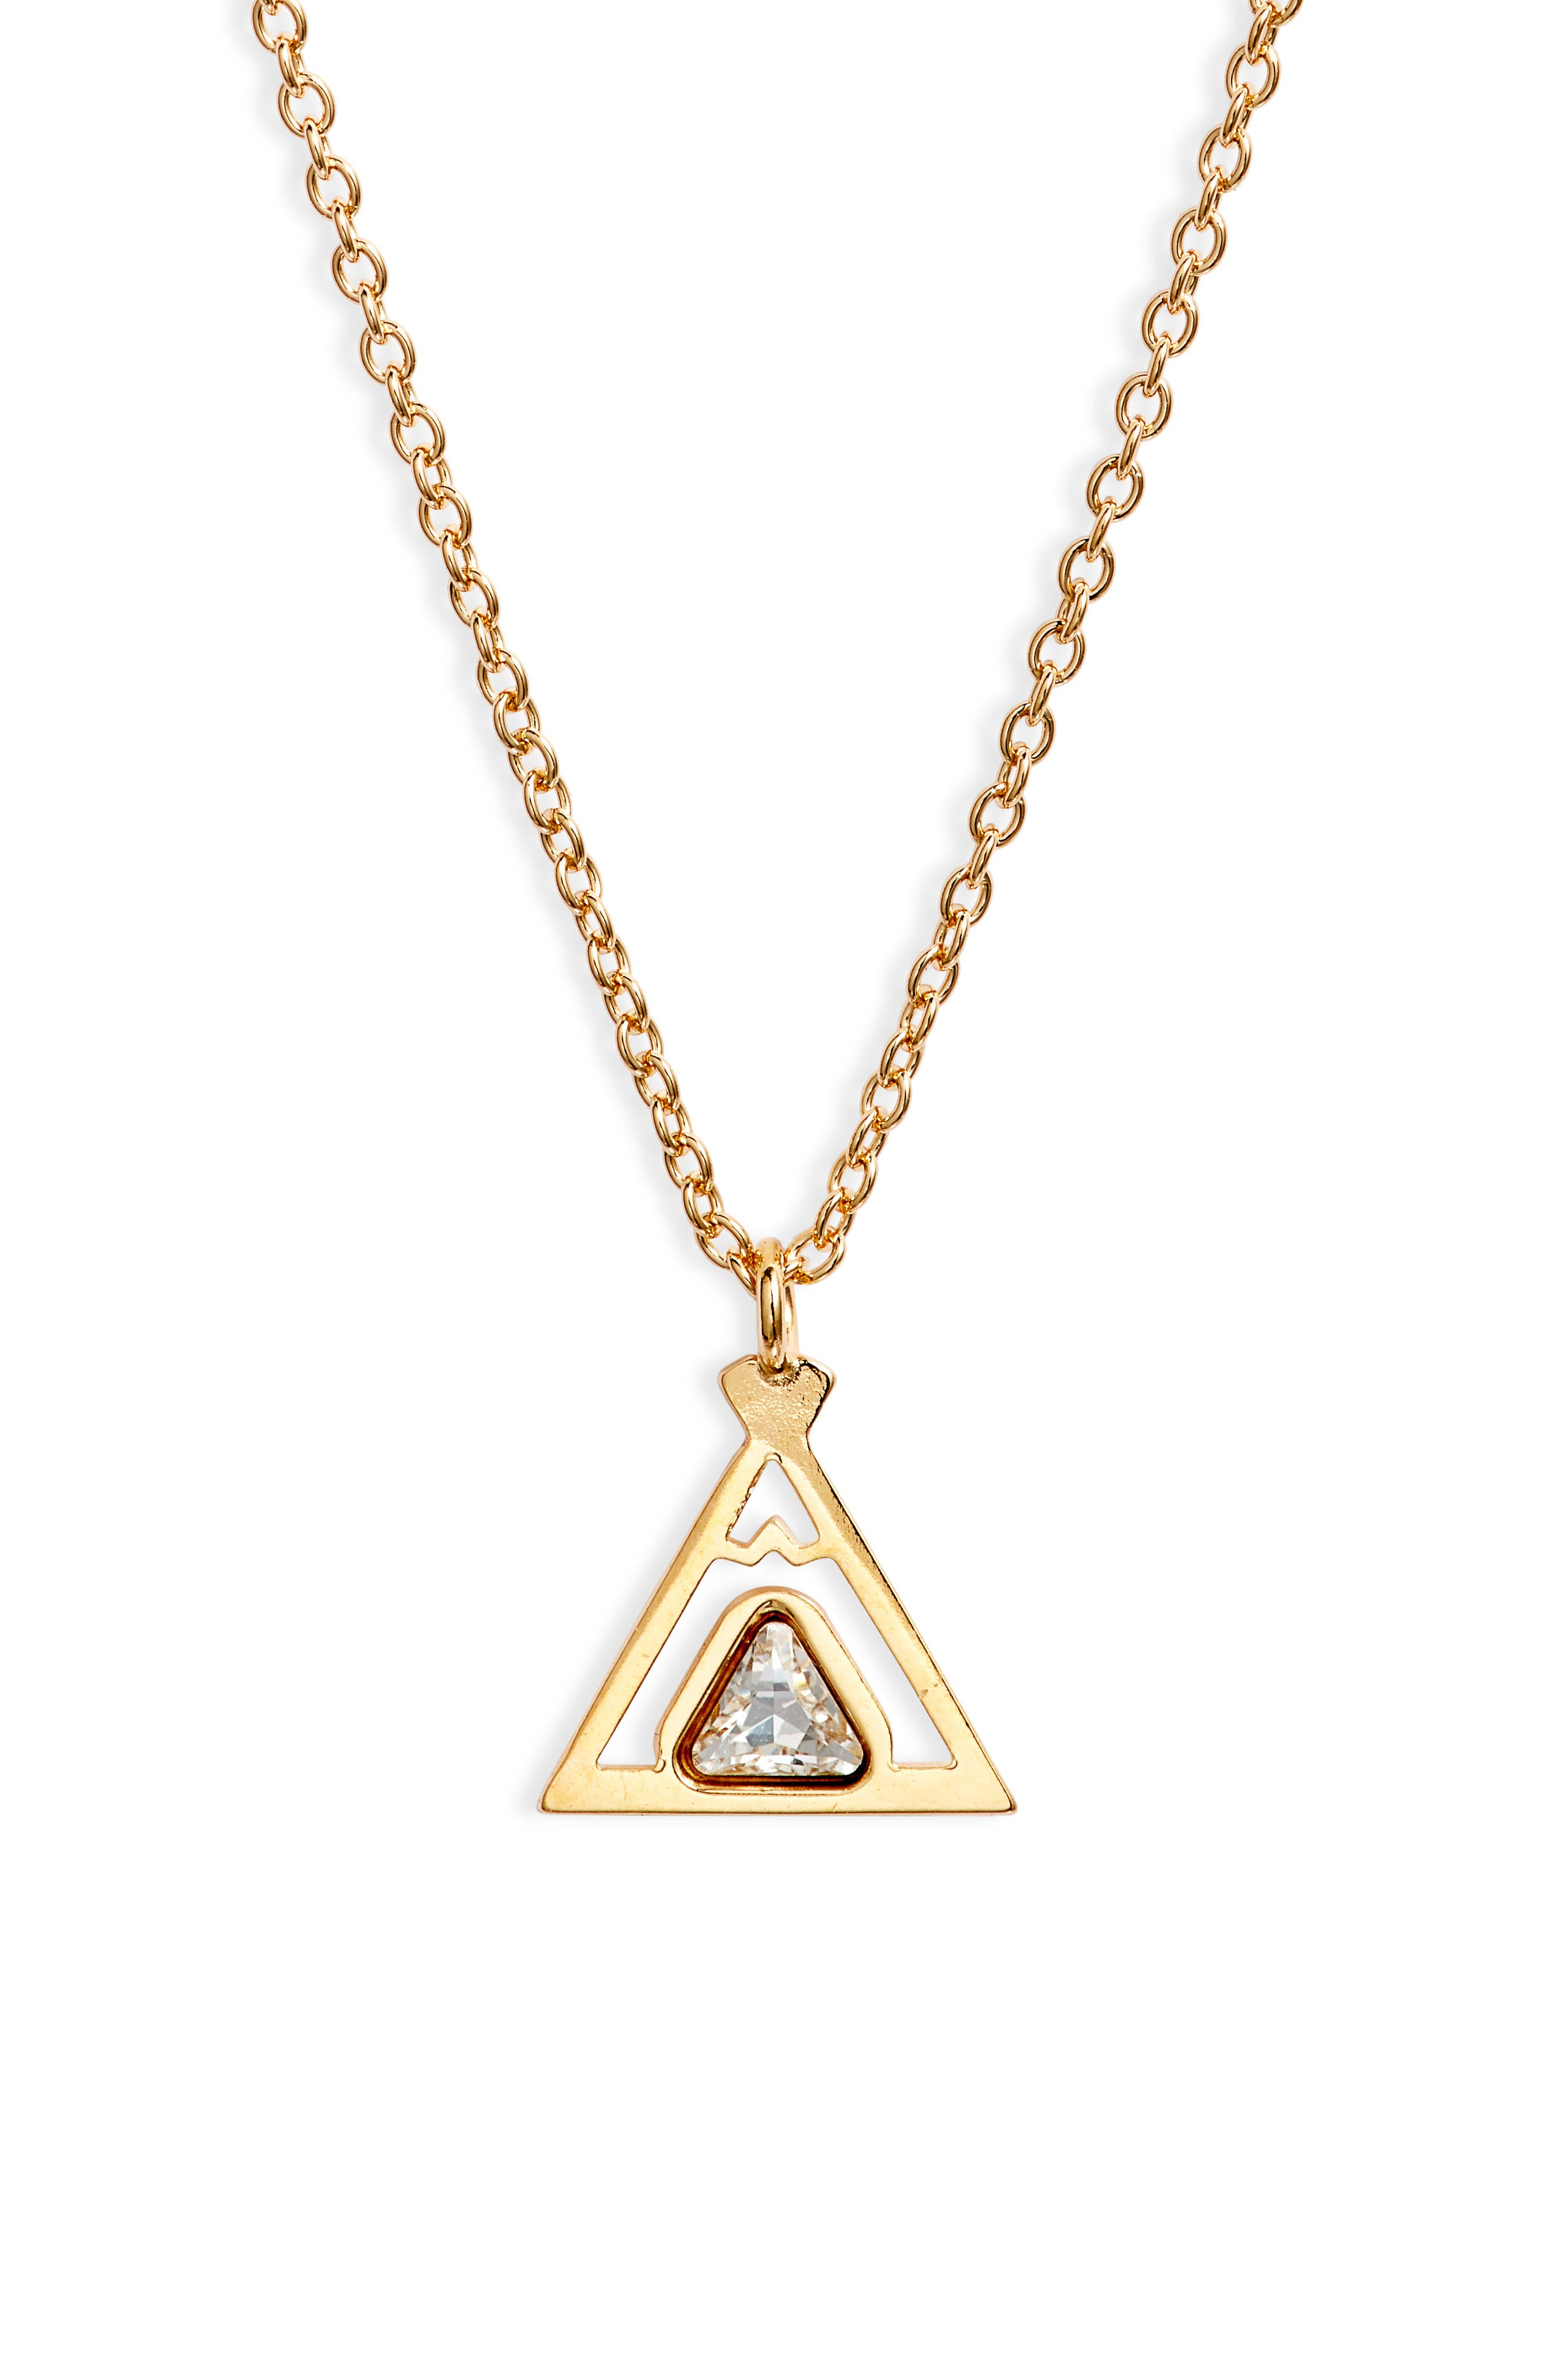 Triangle Friendship Pendant Necklace in Silver at Nordstrom